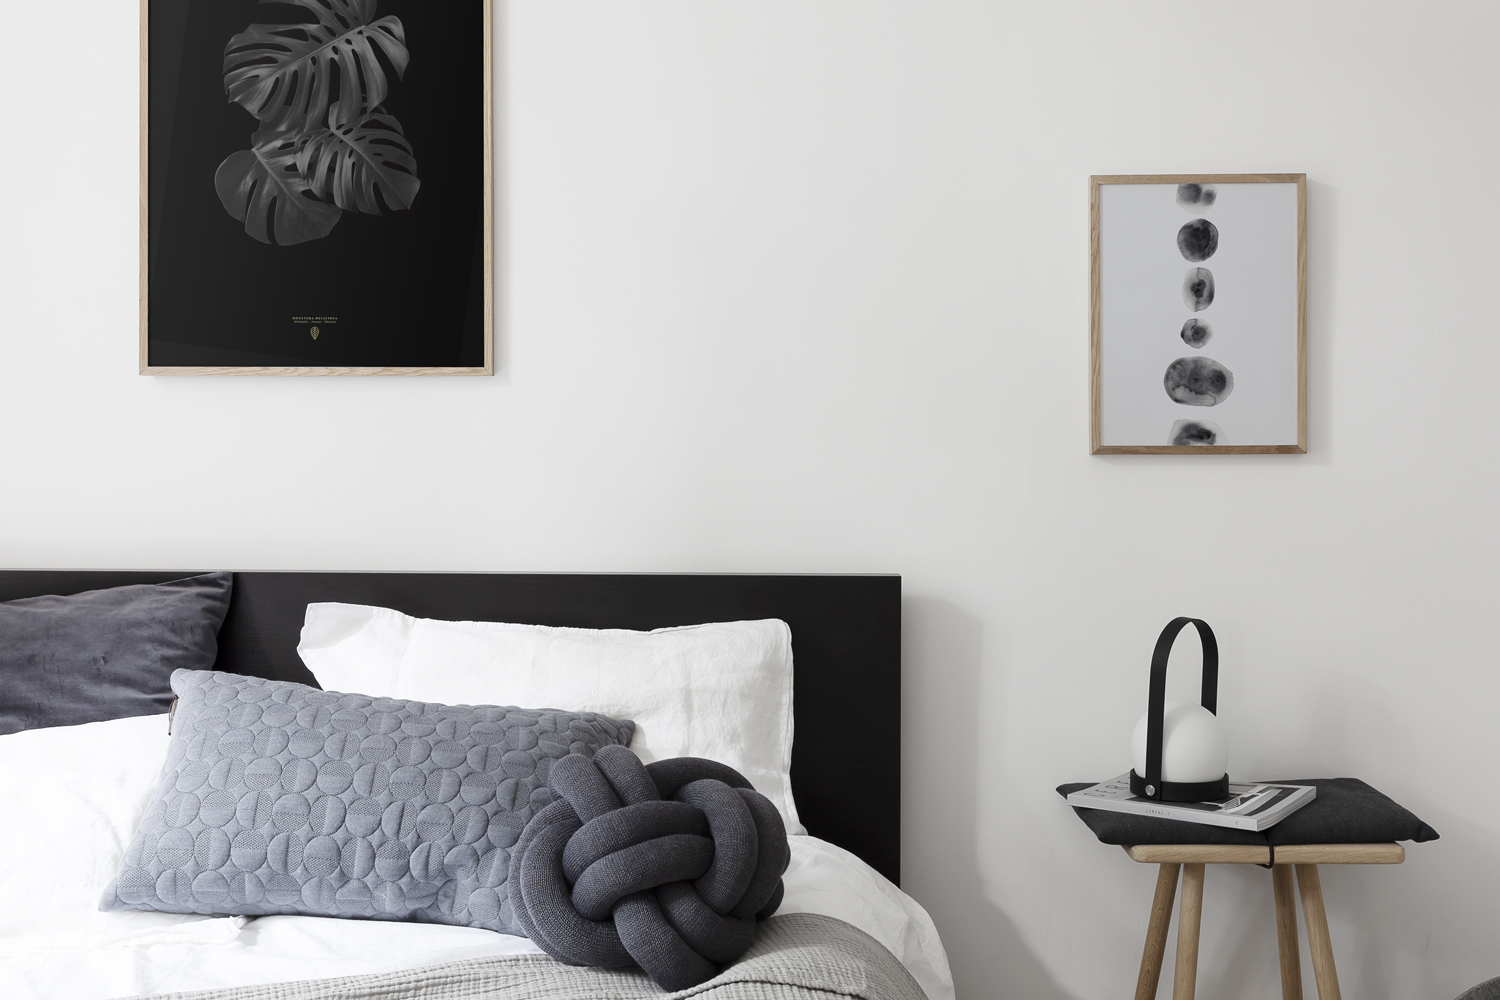 Cozy and soft bedroom look with Connox   via Coco Lapine Design blog. Cozy and soft bedroom look with Connox   COCO LAPINE DESIGNCOCO